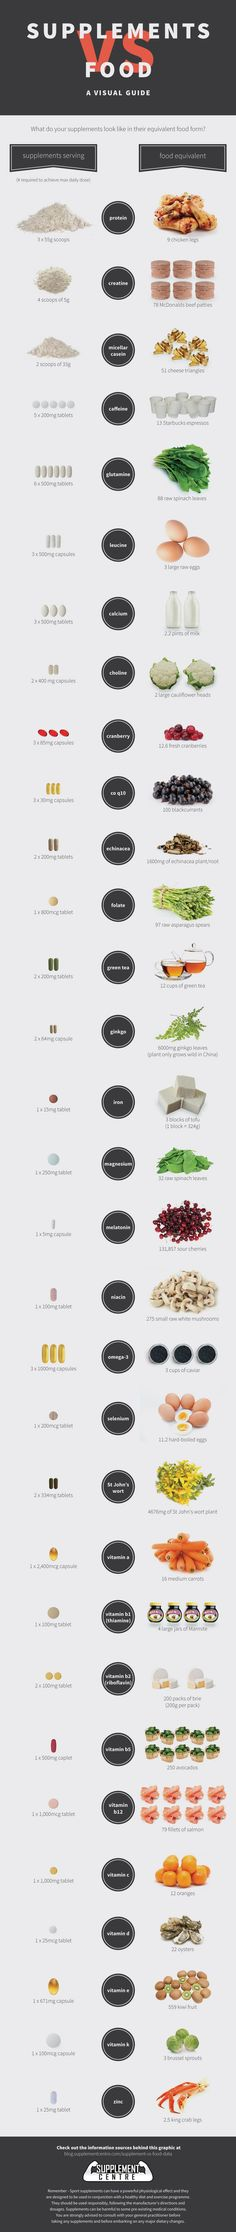 Supplements vs Food Infographic. Interesting...the point should still be to get our nutrients through food tho